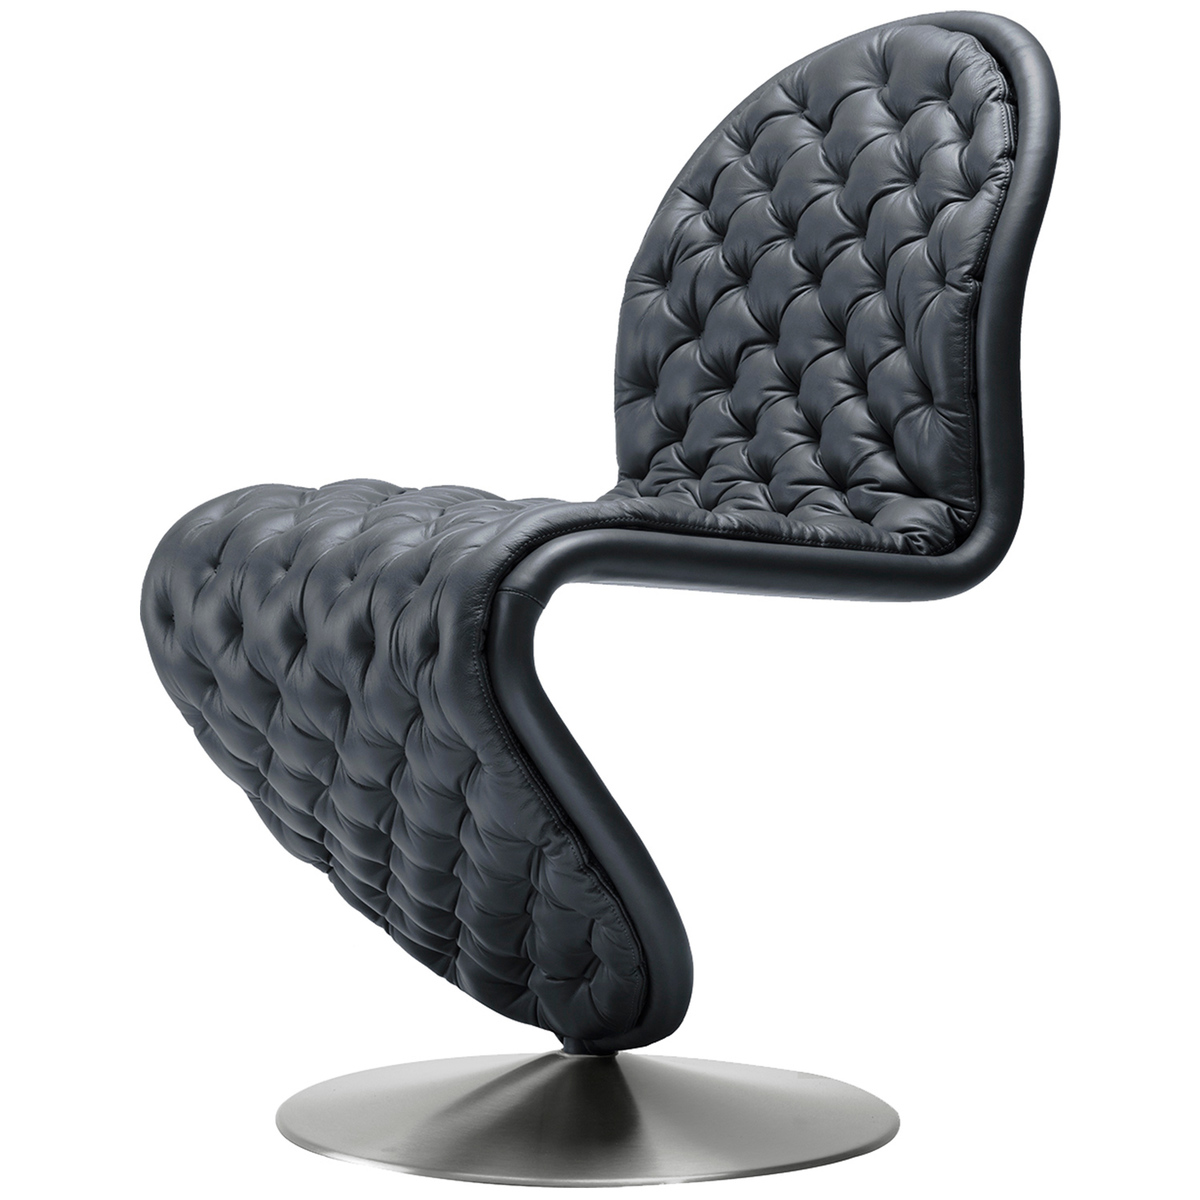 S Shaped Chair System 1 2 3 Deluxe Chair Black Leather